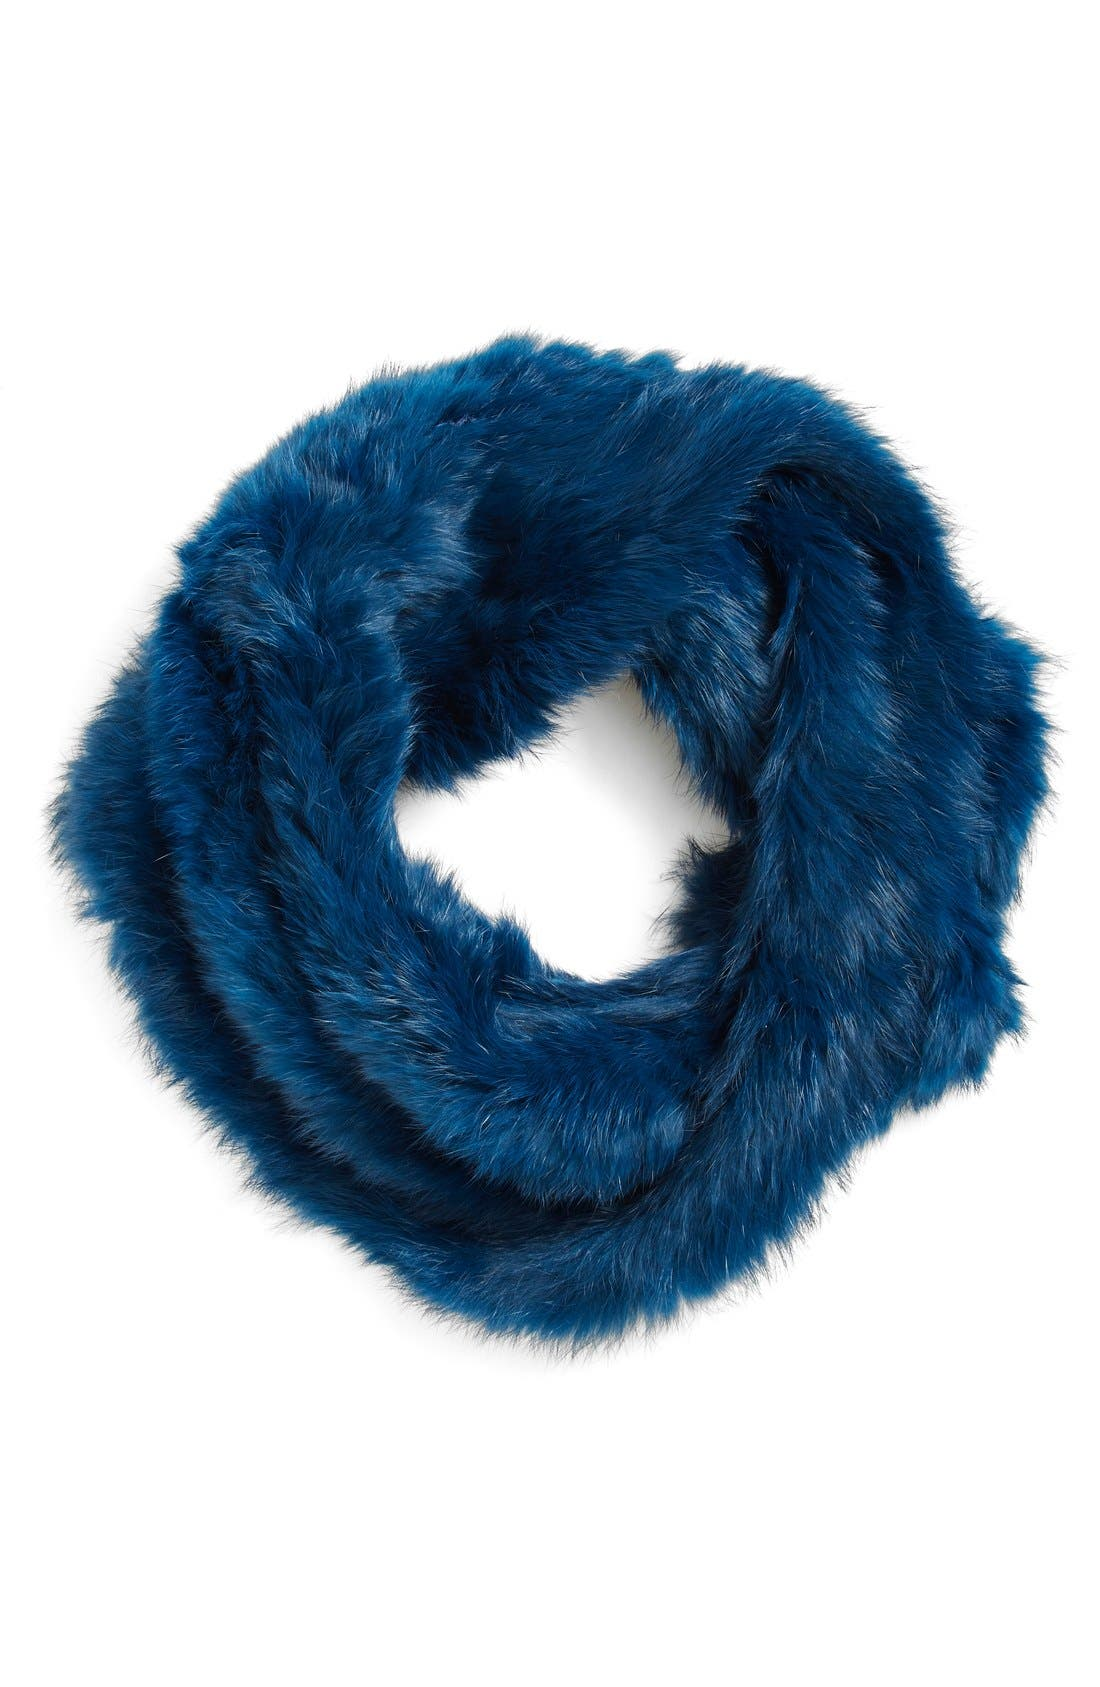 Rabbit Fur Infinity Scarf,                             Main thumbnail 1, color,                             Sea Blue